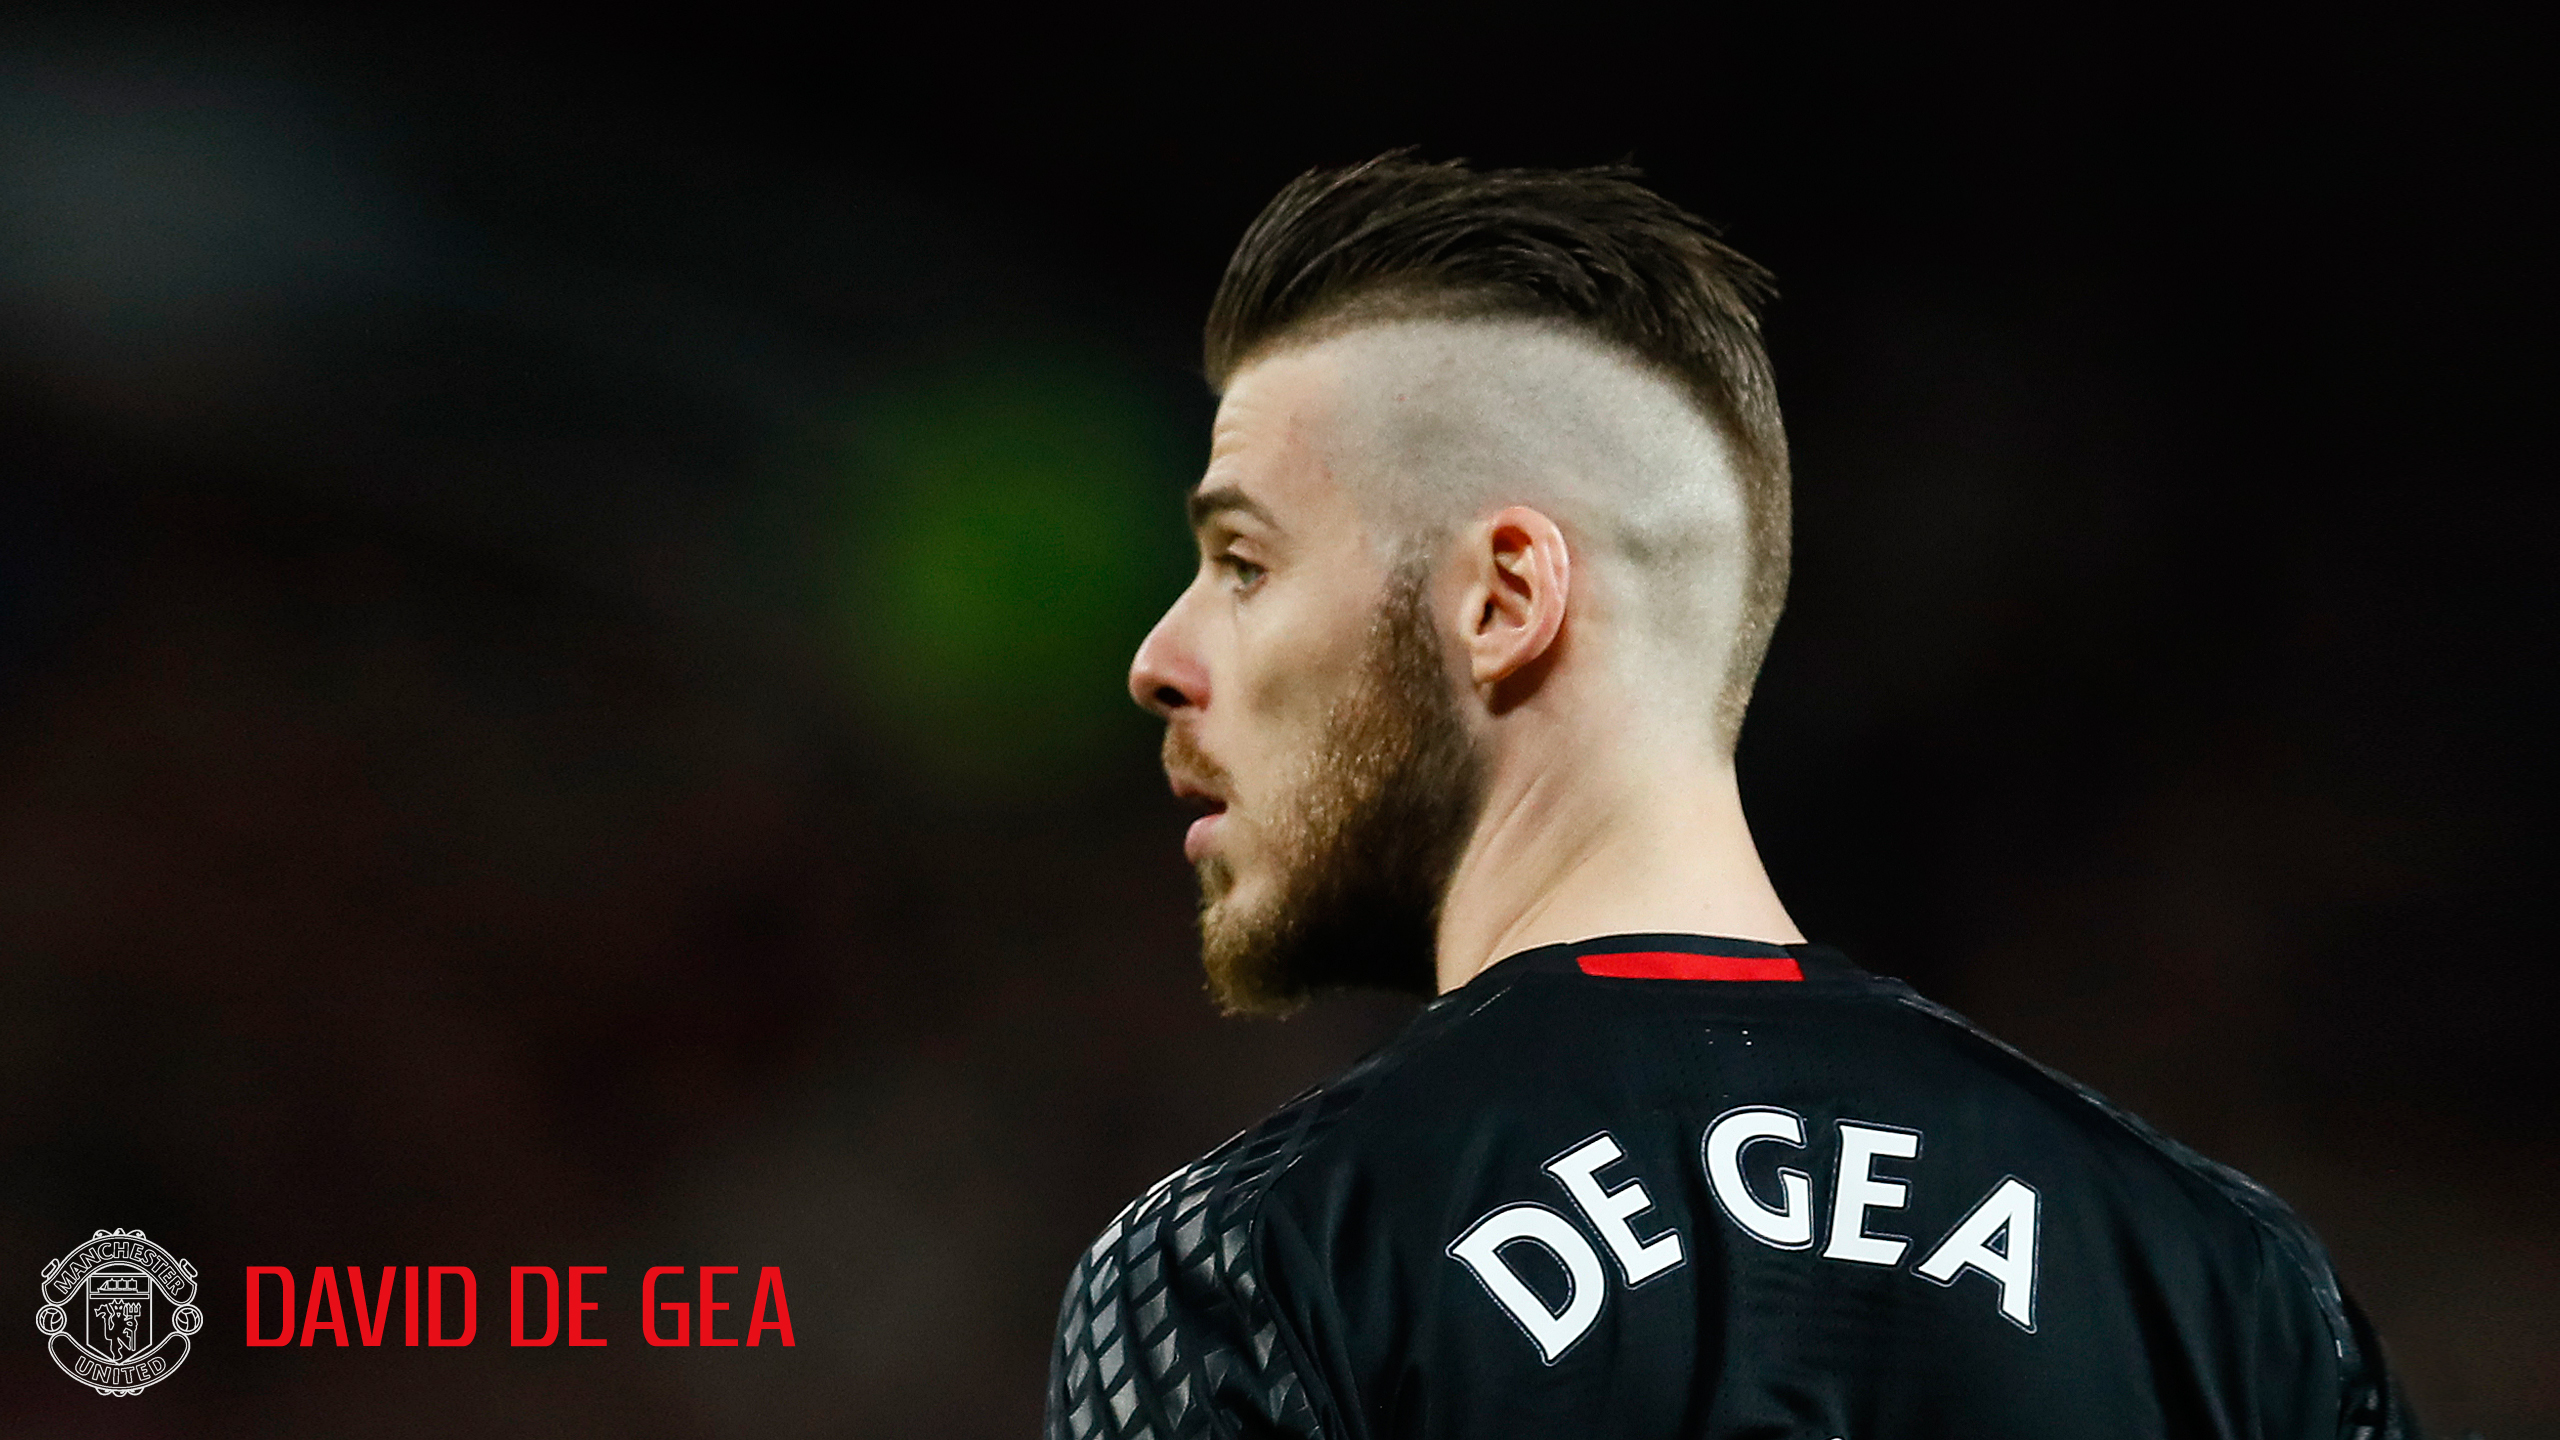 David de Gea Manchester United Close Up for Wallpaper